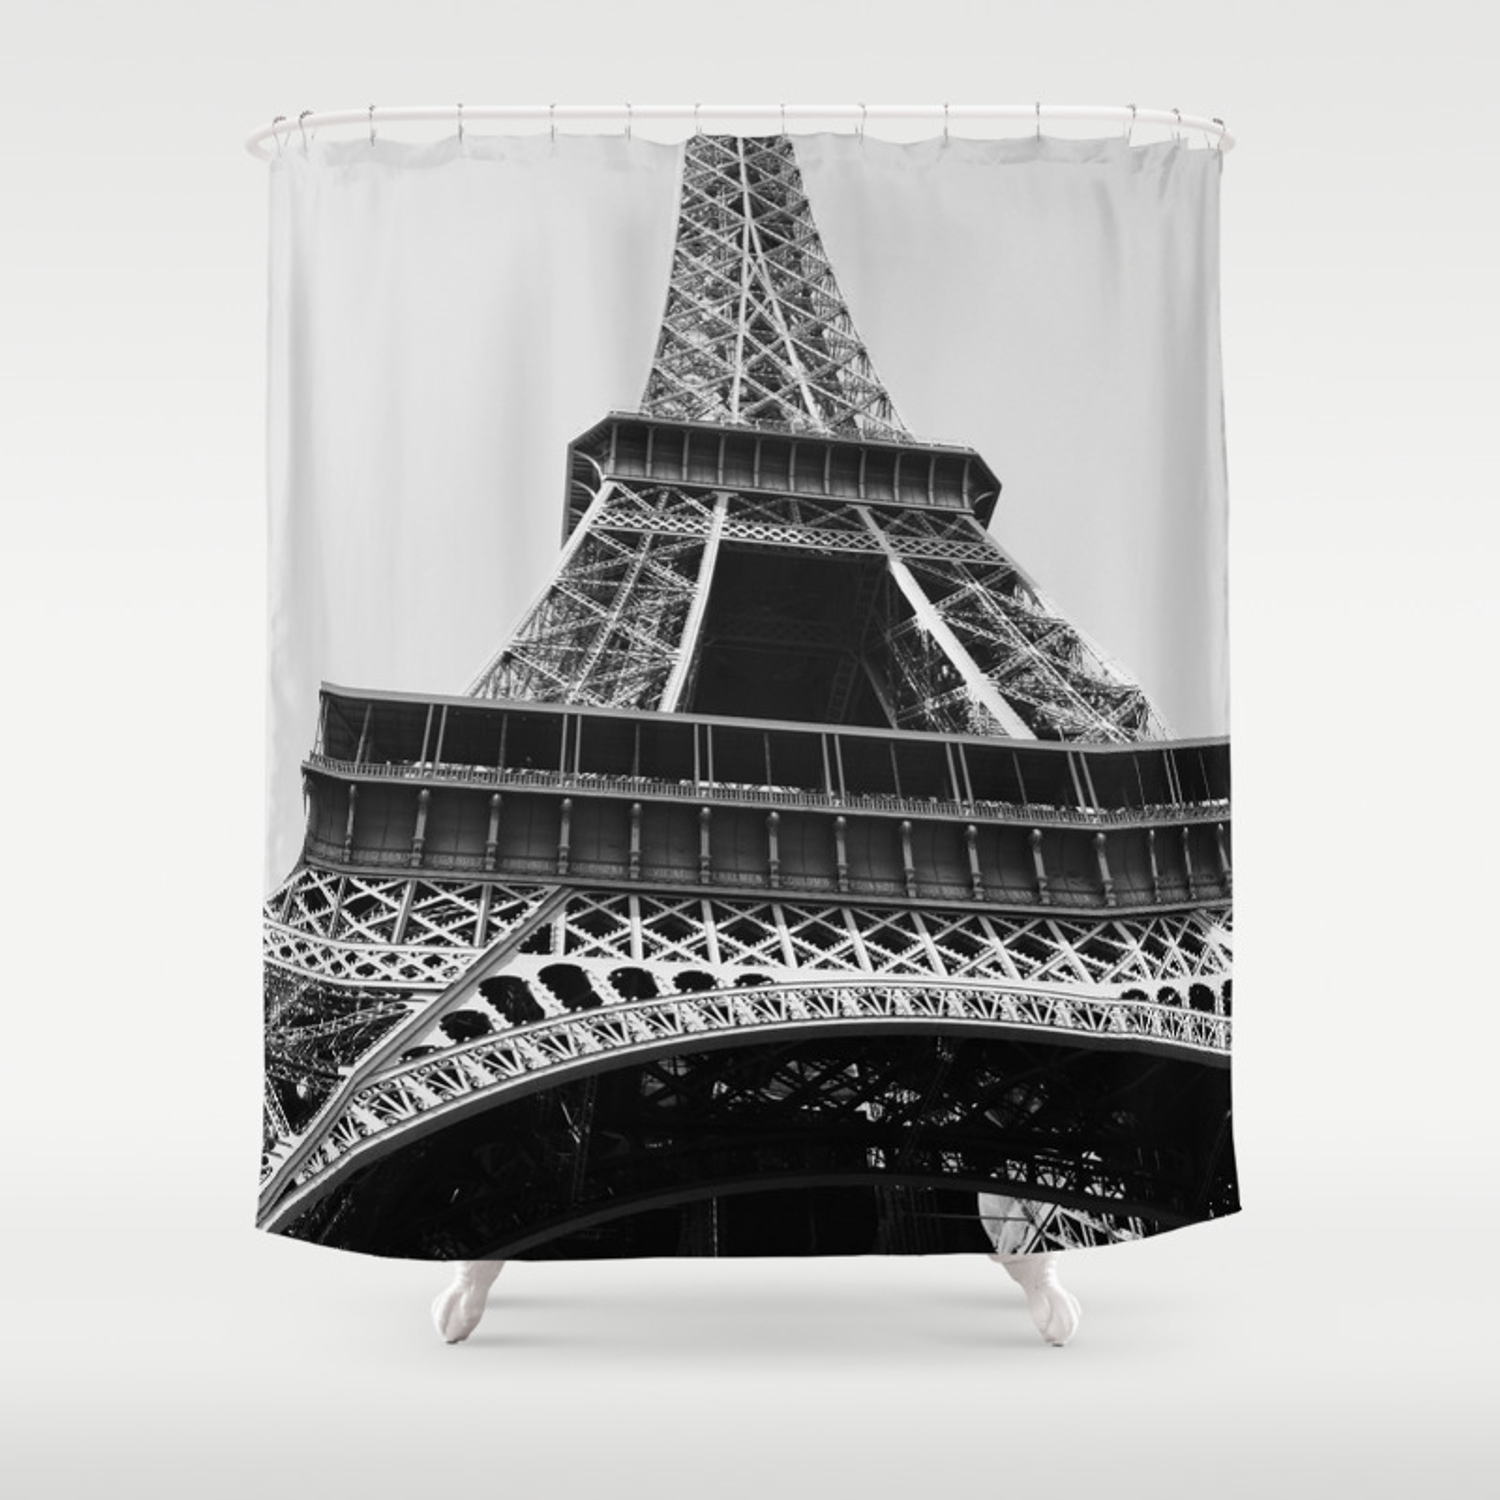 Eiffel Tower Looking Up At The World S Most Famous Monument In Paris France Classic Photograph Shower Curtain